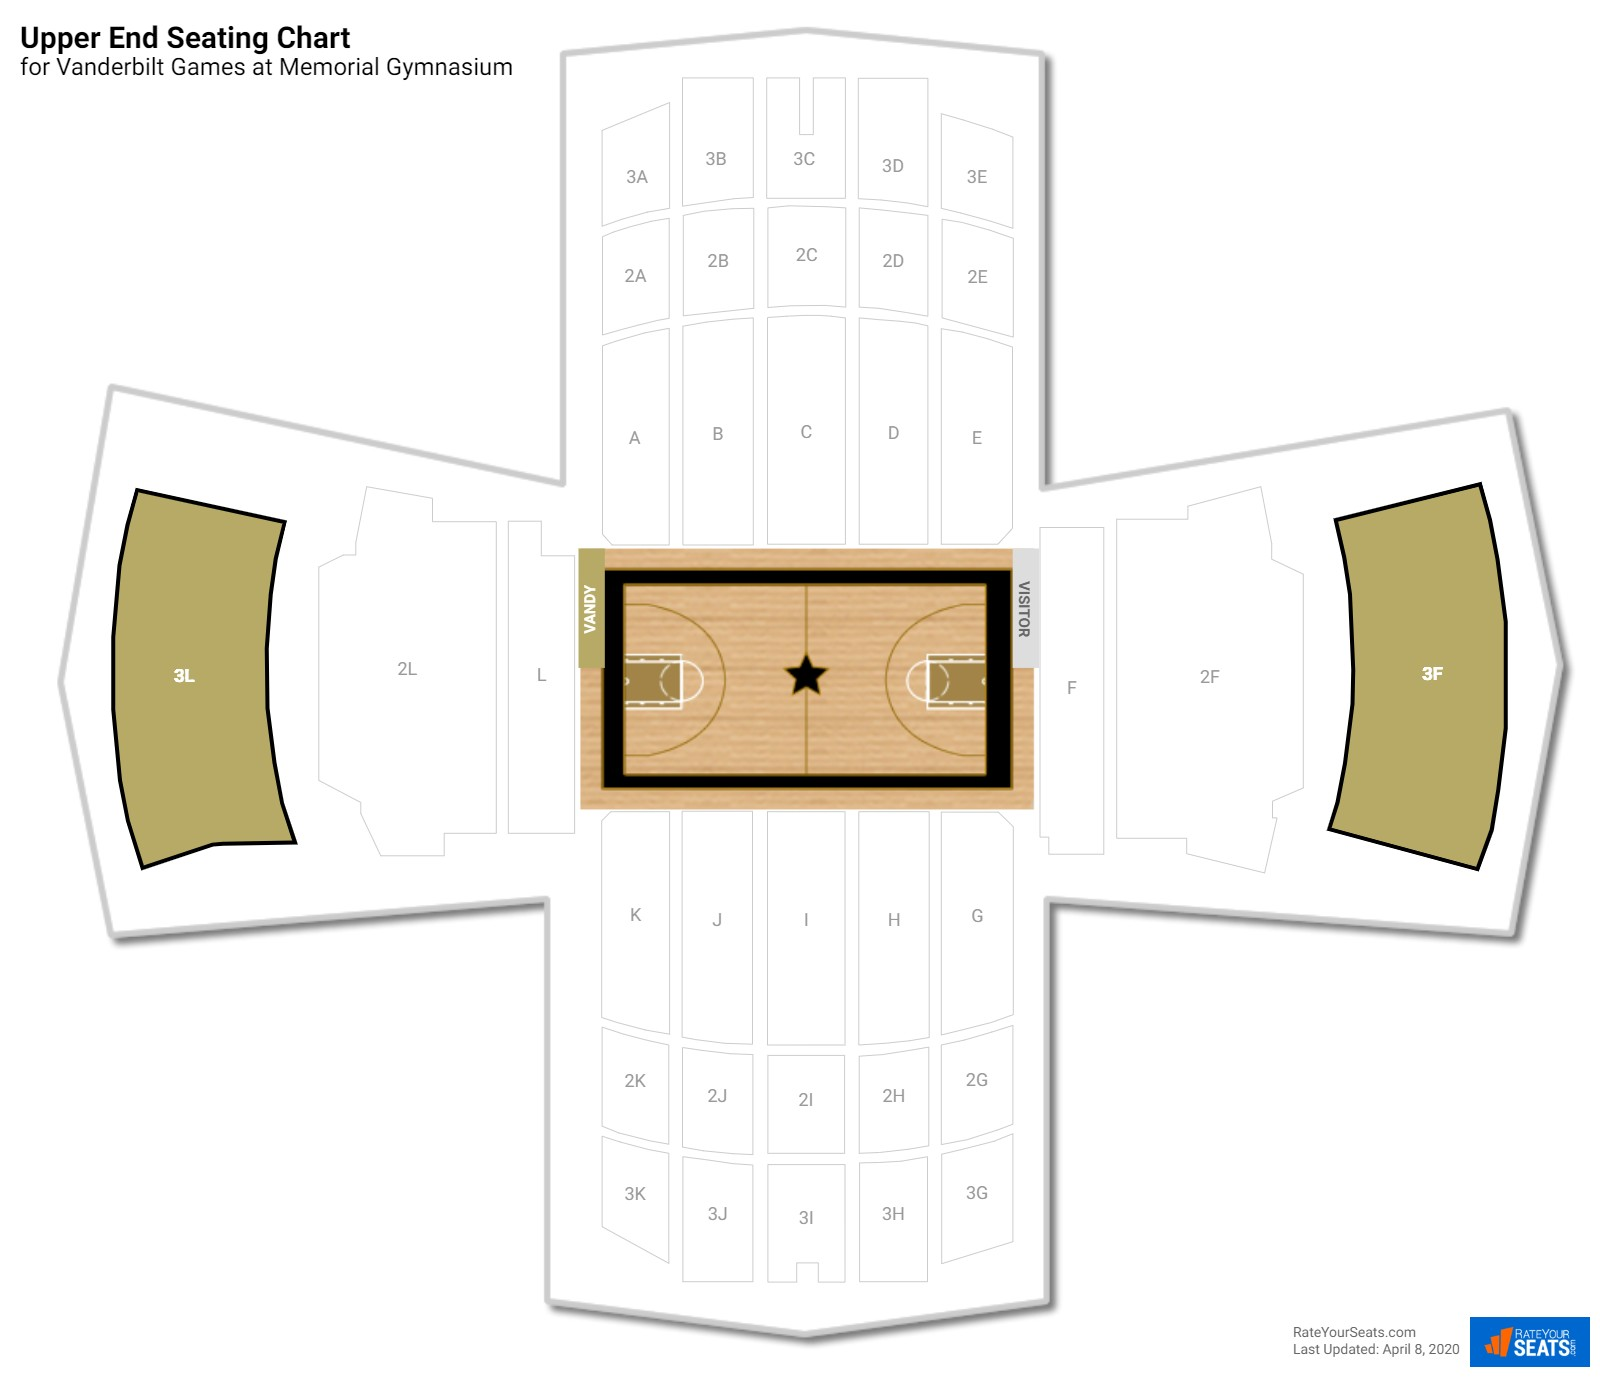 Memorial Gymnasium Upper End seating chart